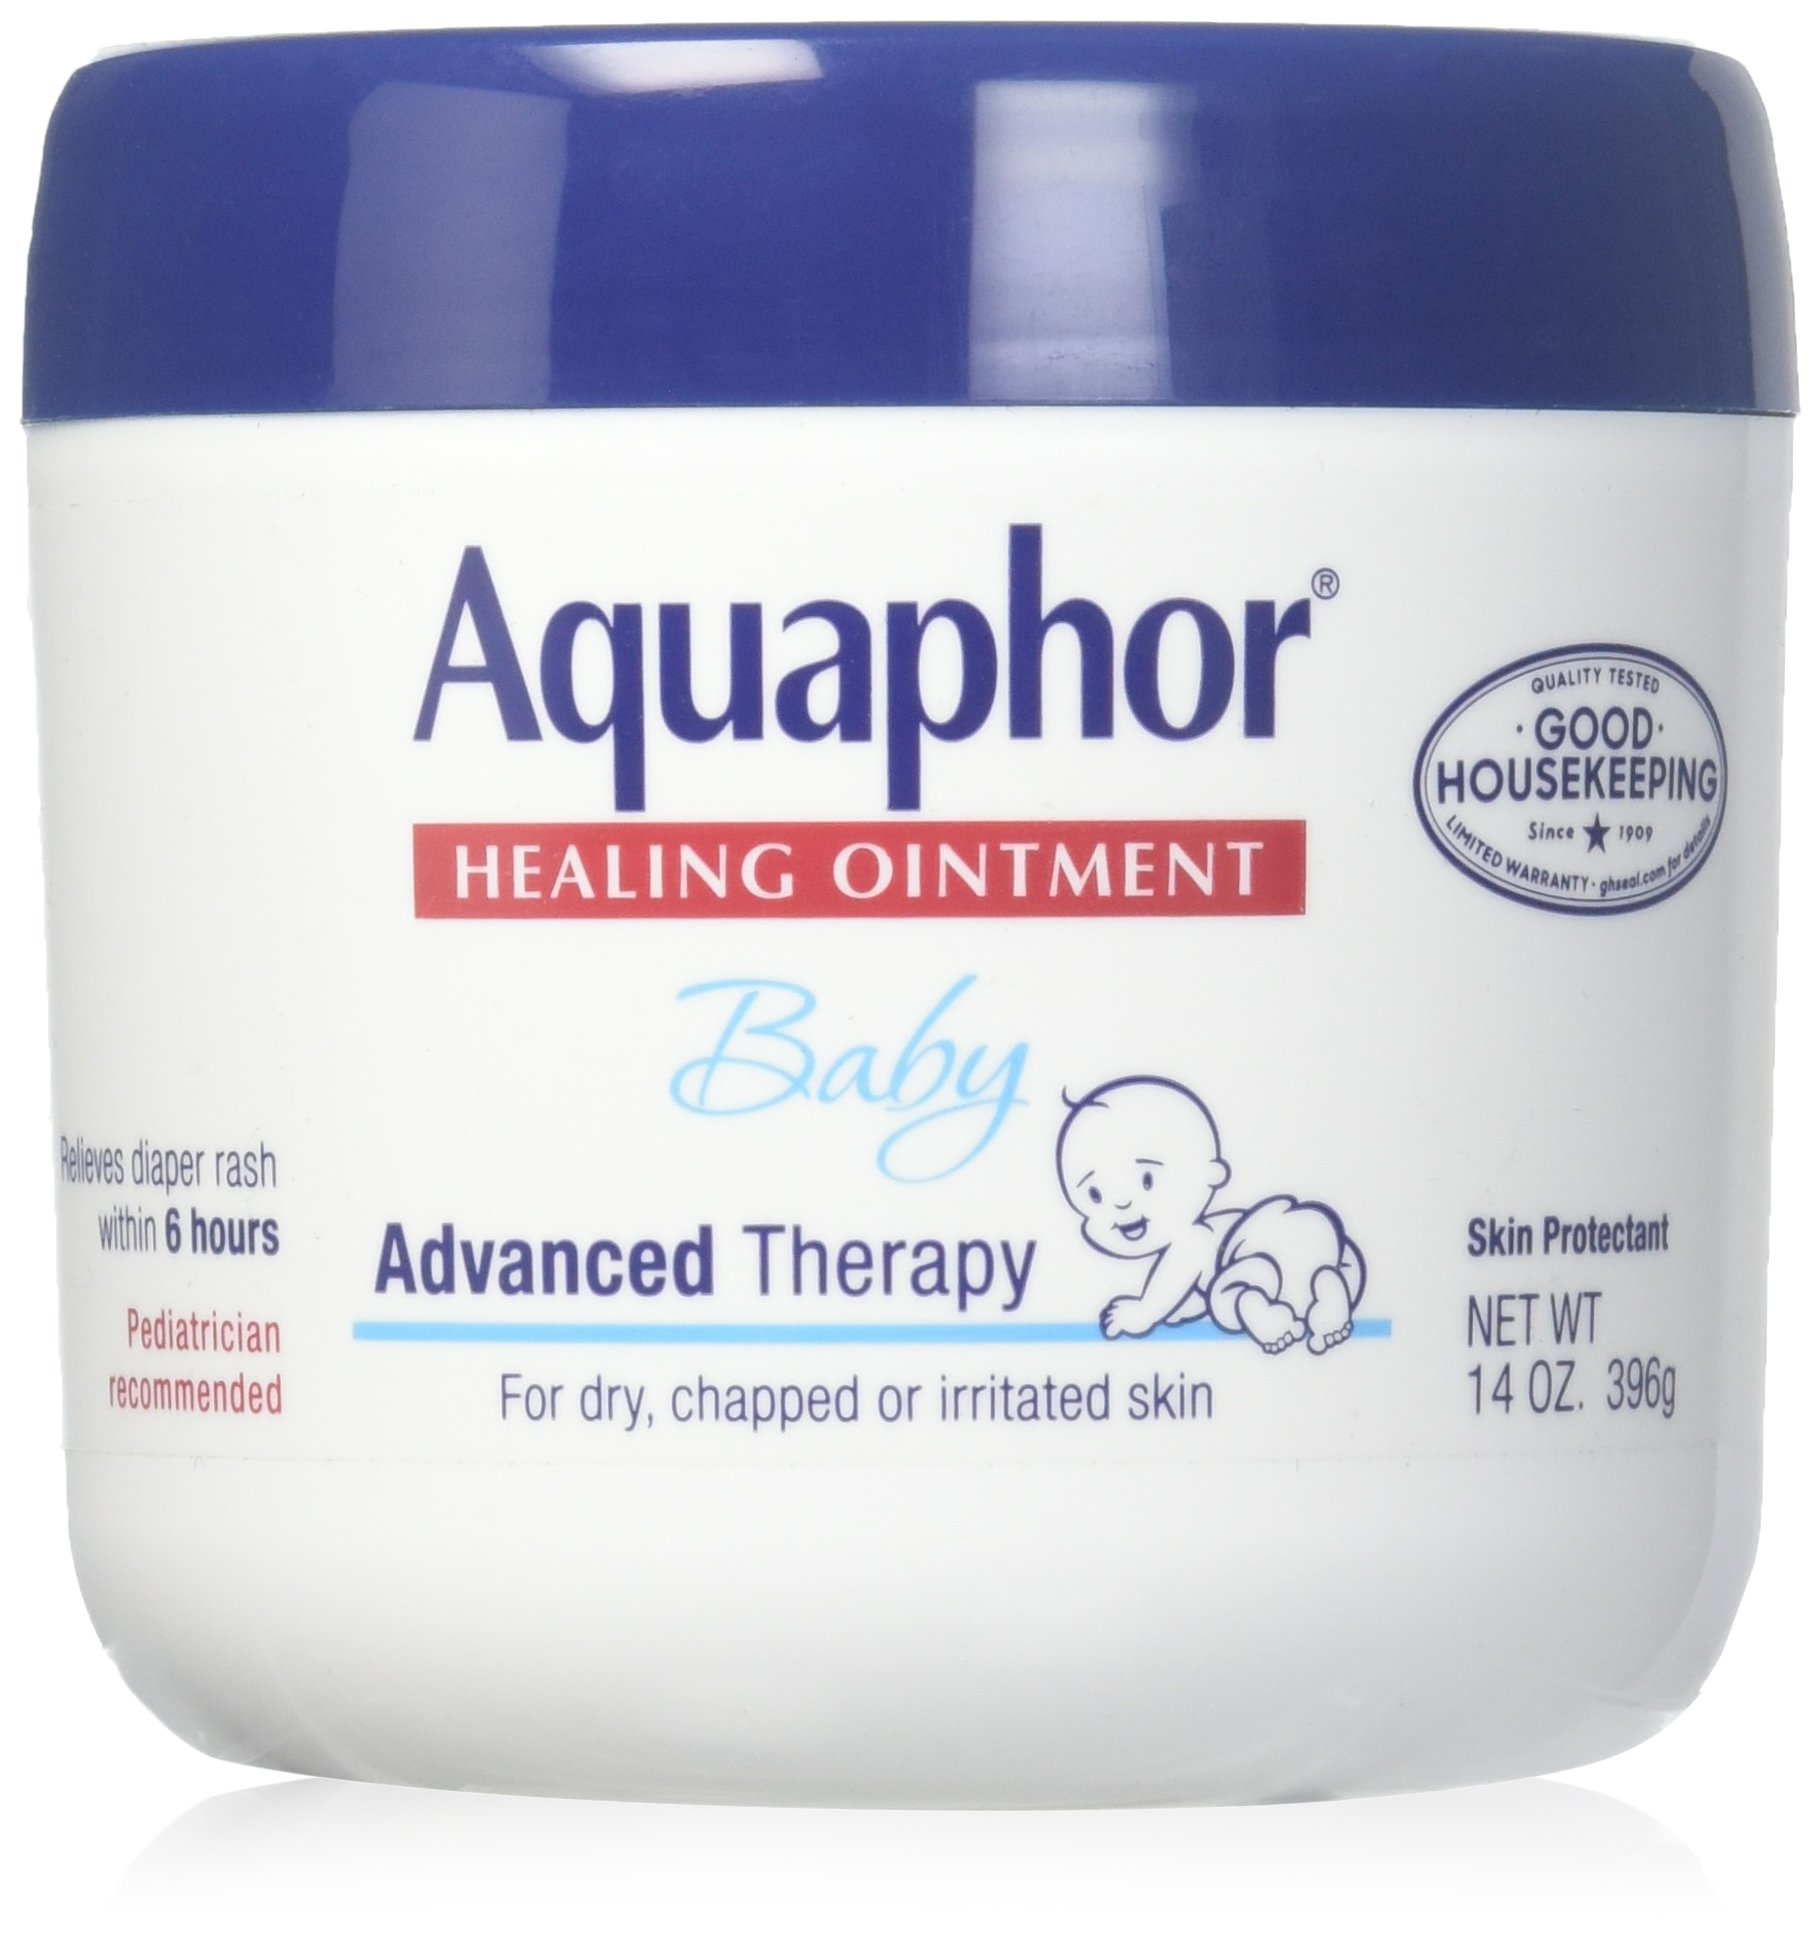 Aquaphor Baby Healing Ointment Advanced Therapy Skin Protectant, 14 Ounce, Pack of 3 by Aquaphor